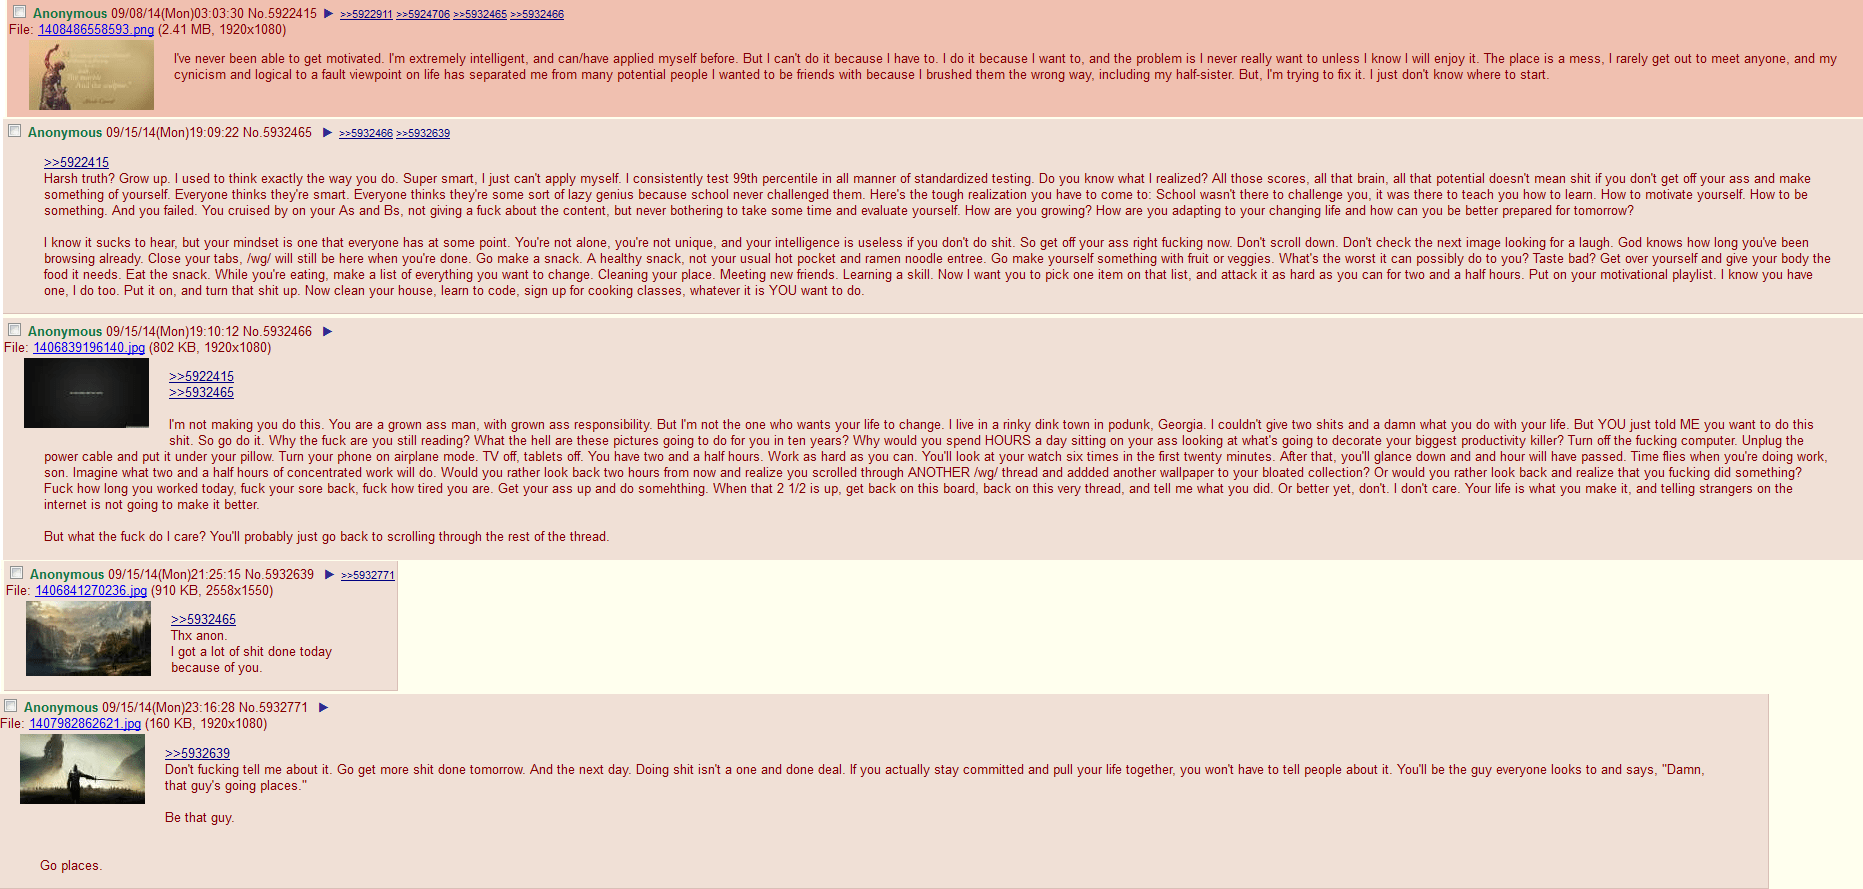 [Image] 4Chan user writes how to get motivated.